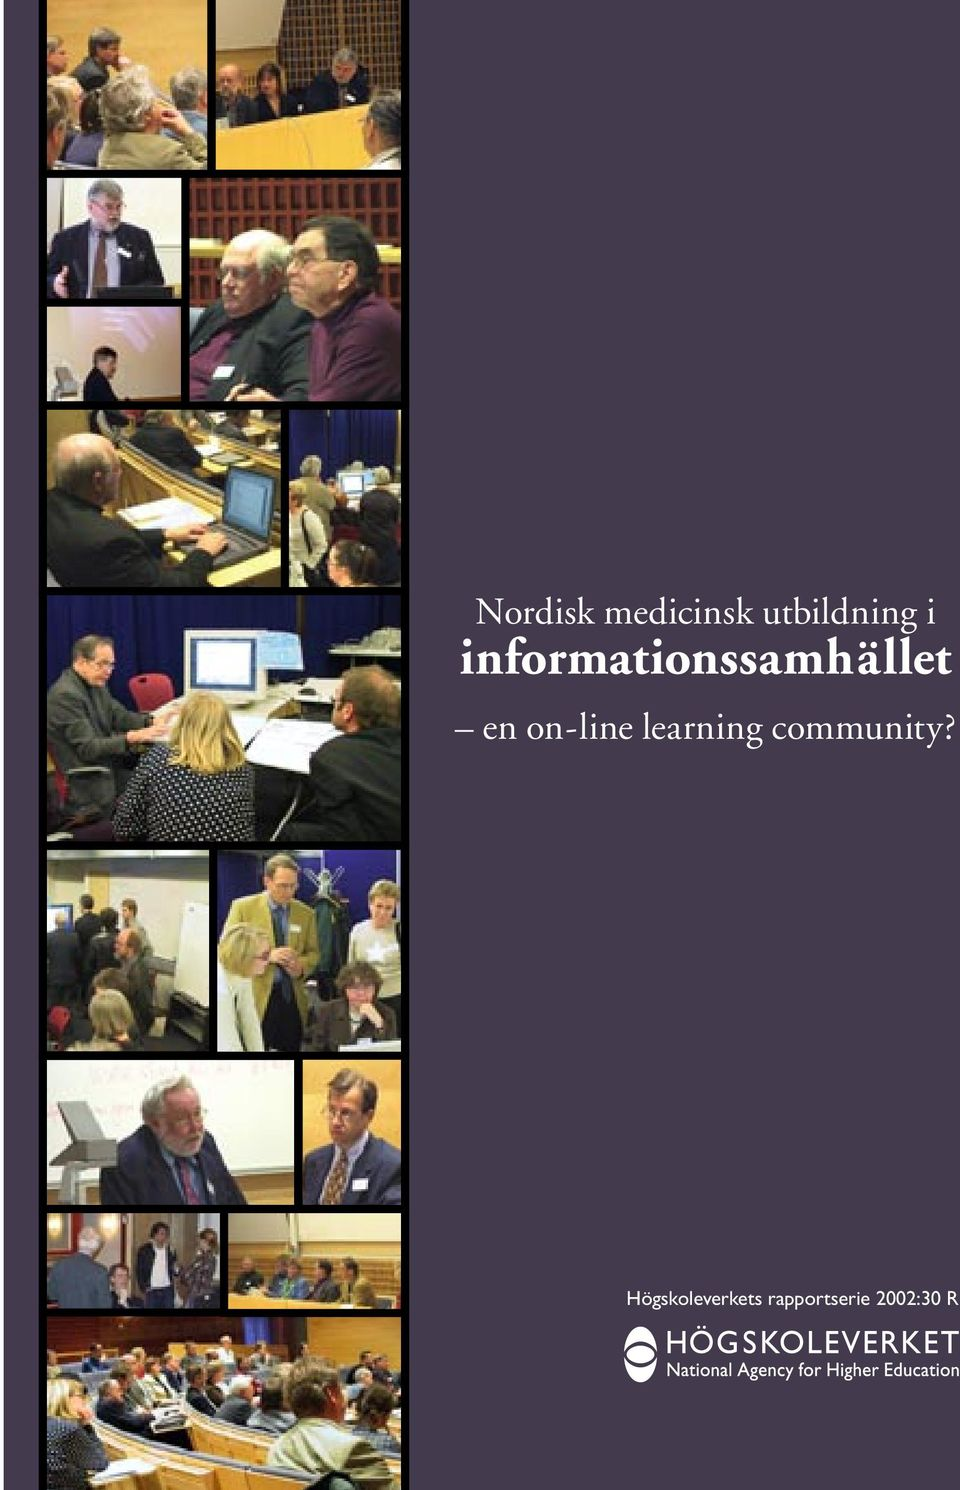 on-line learning community?